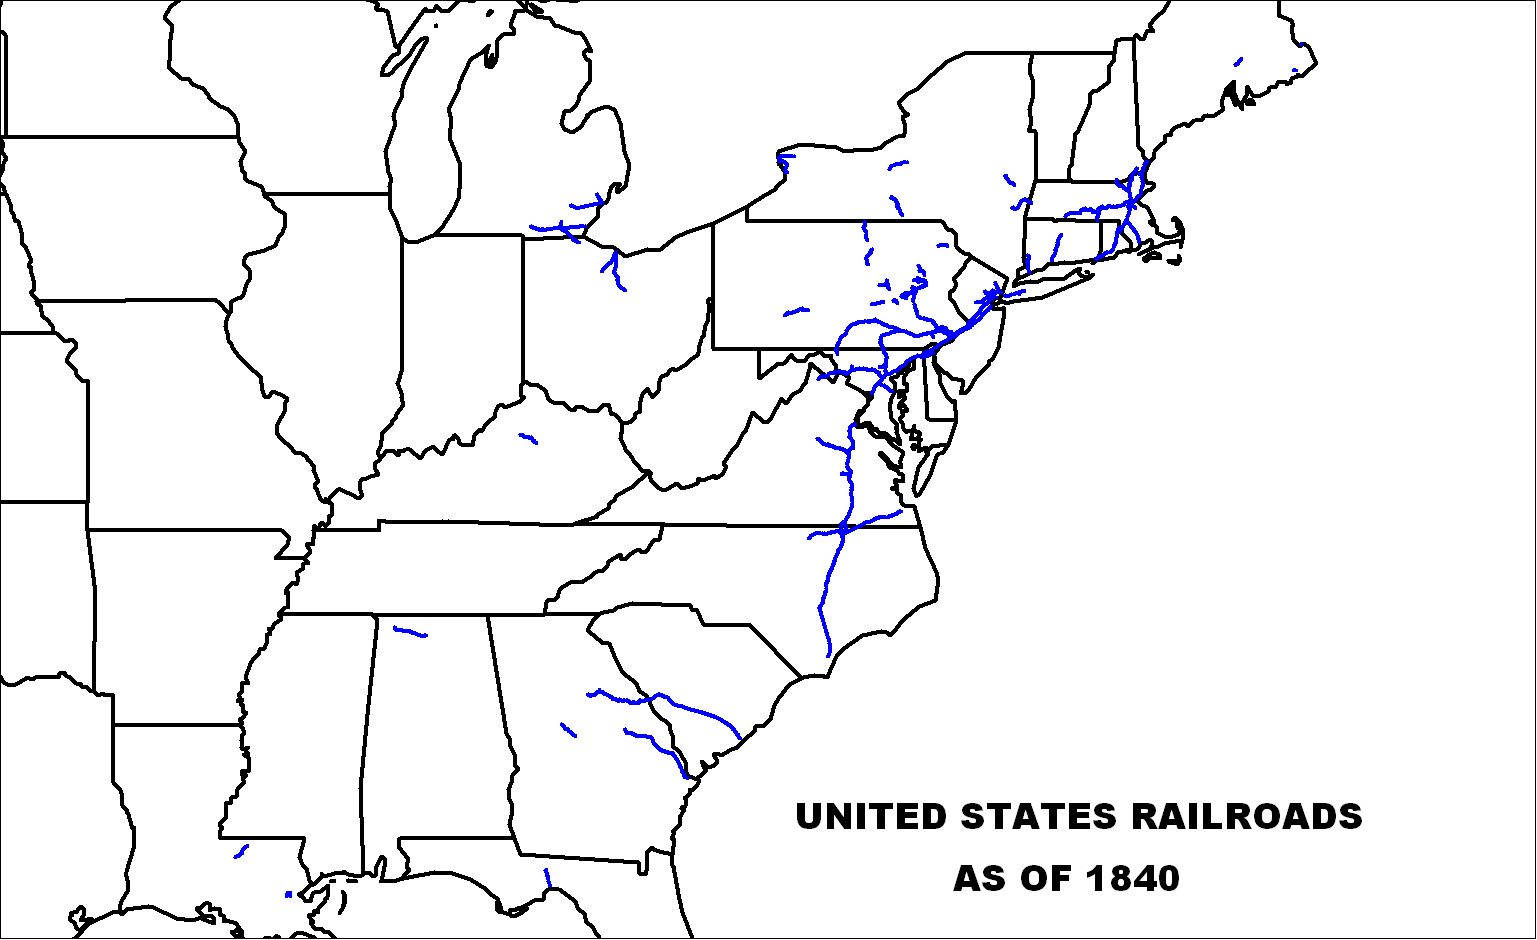 US Railroad Maps as of 1840